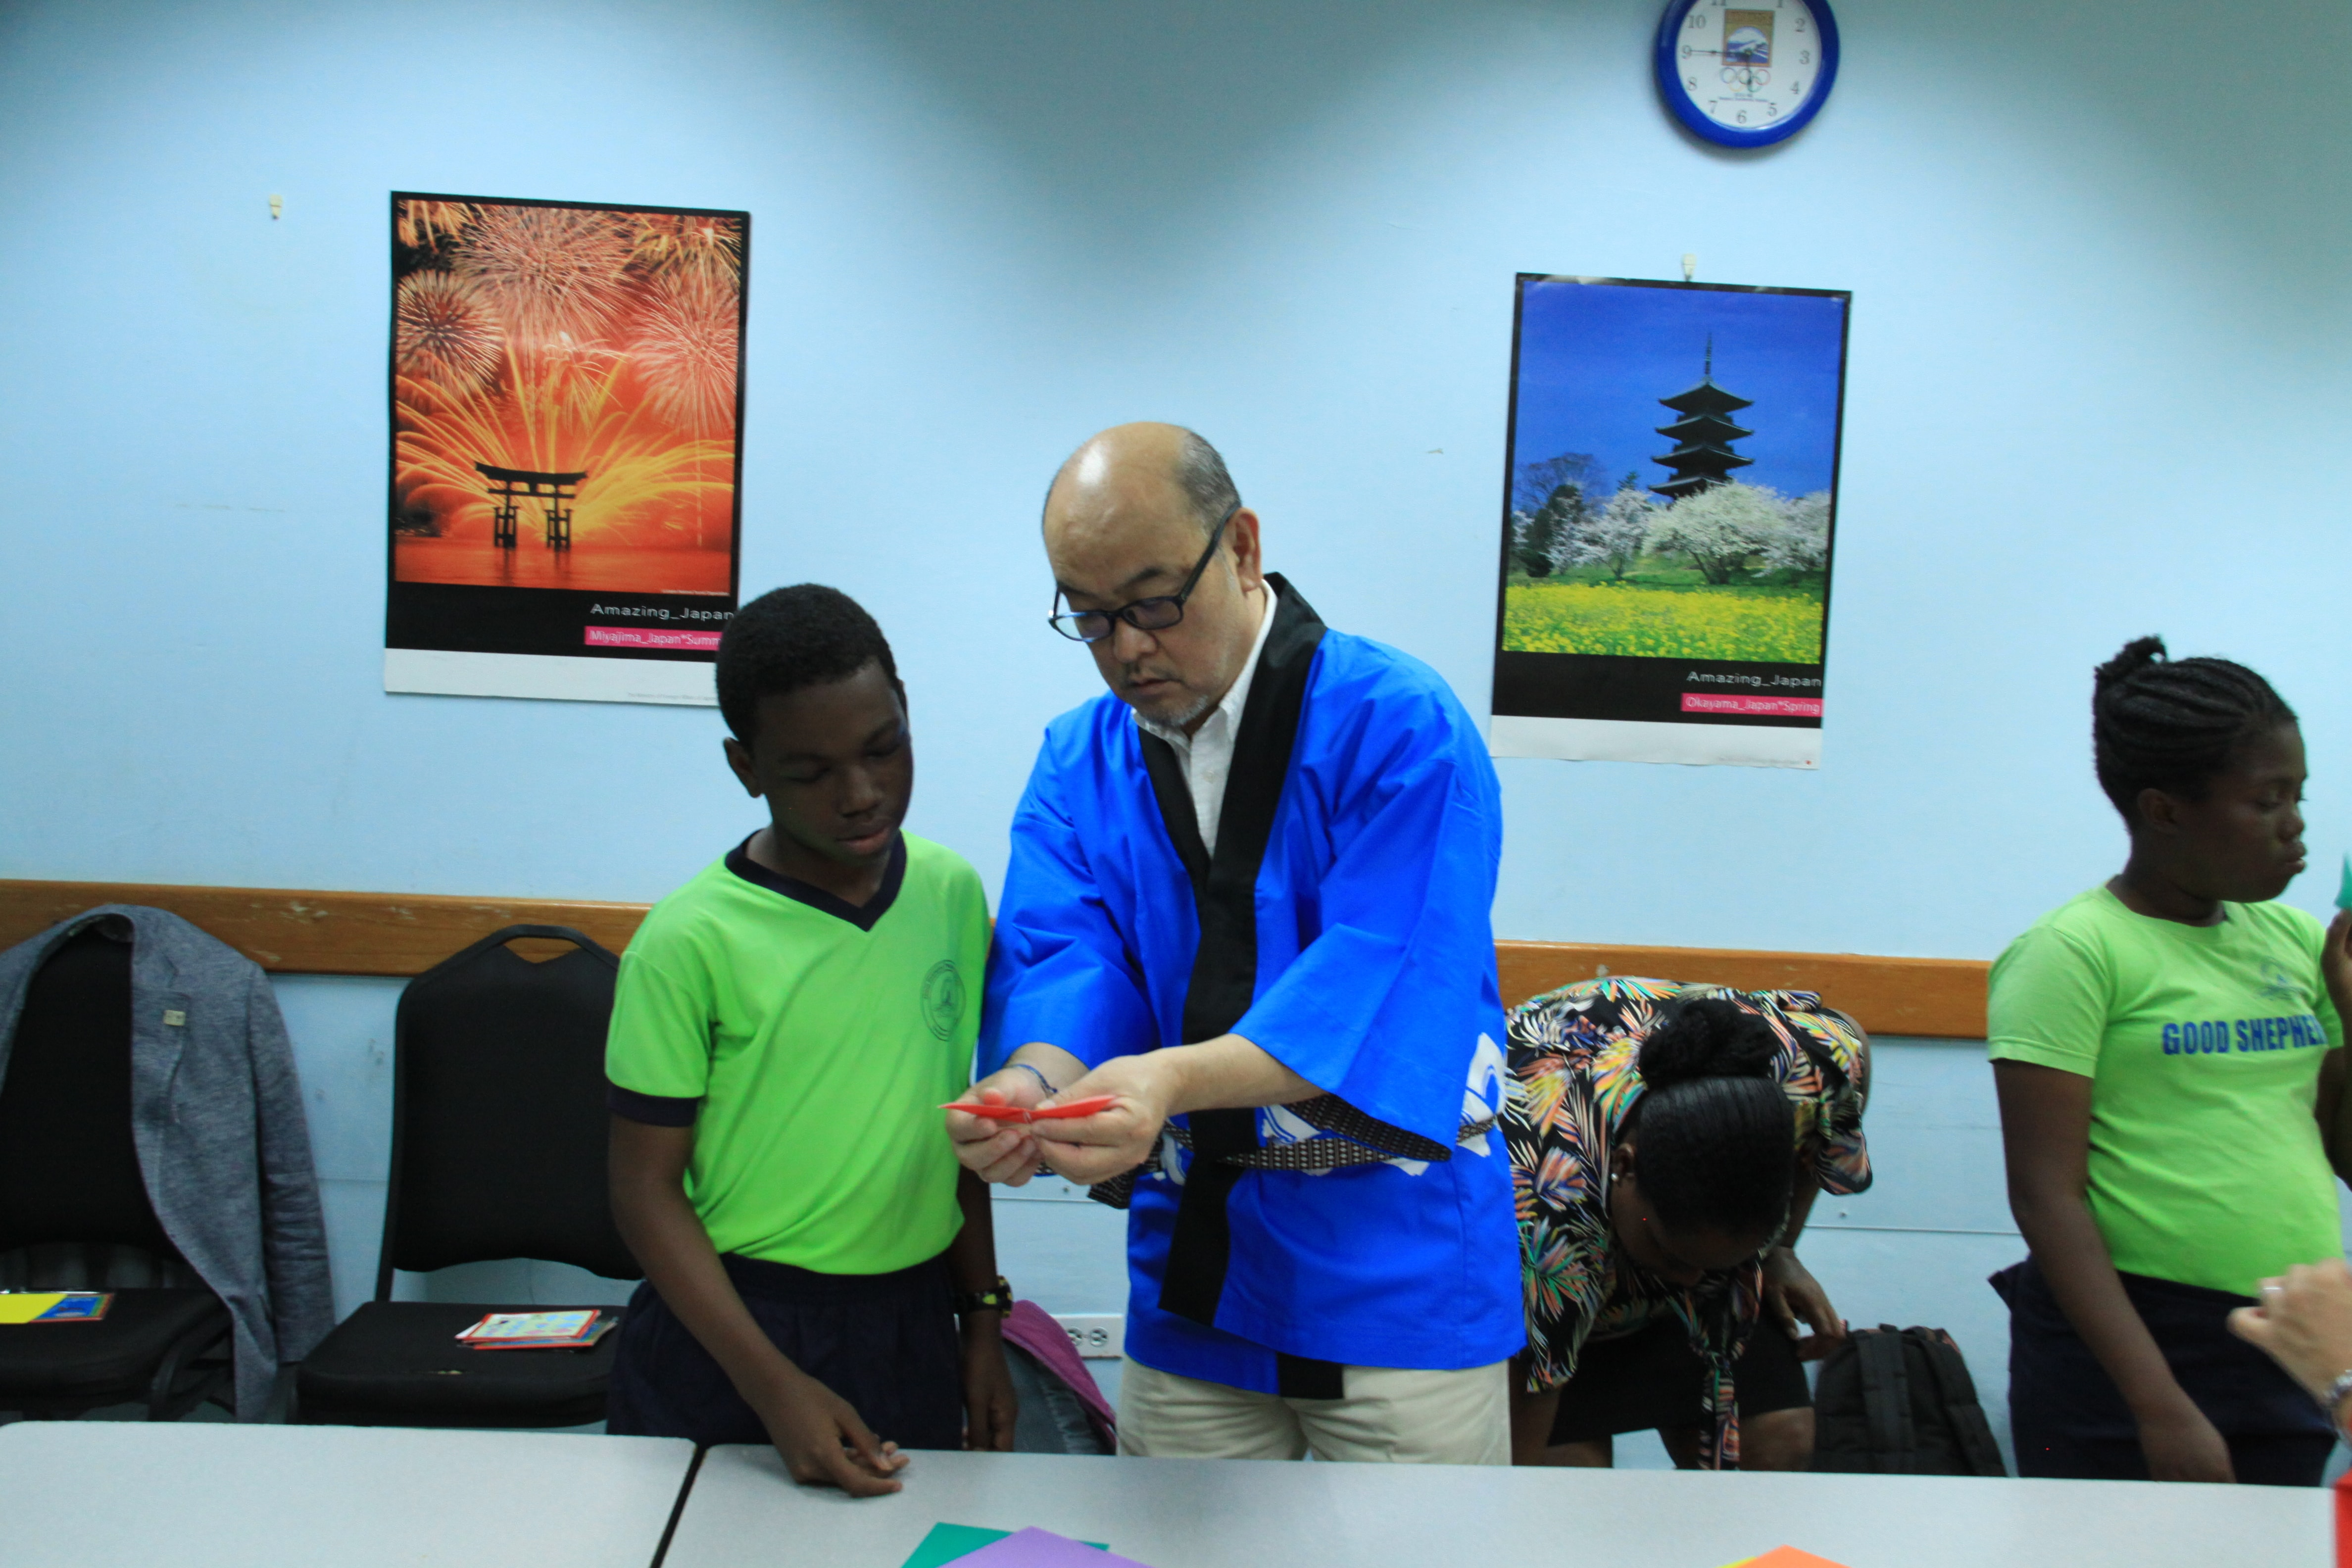 Origami with the Japanese Ambassador